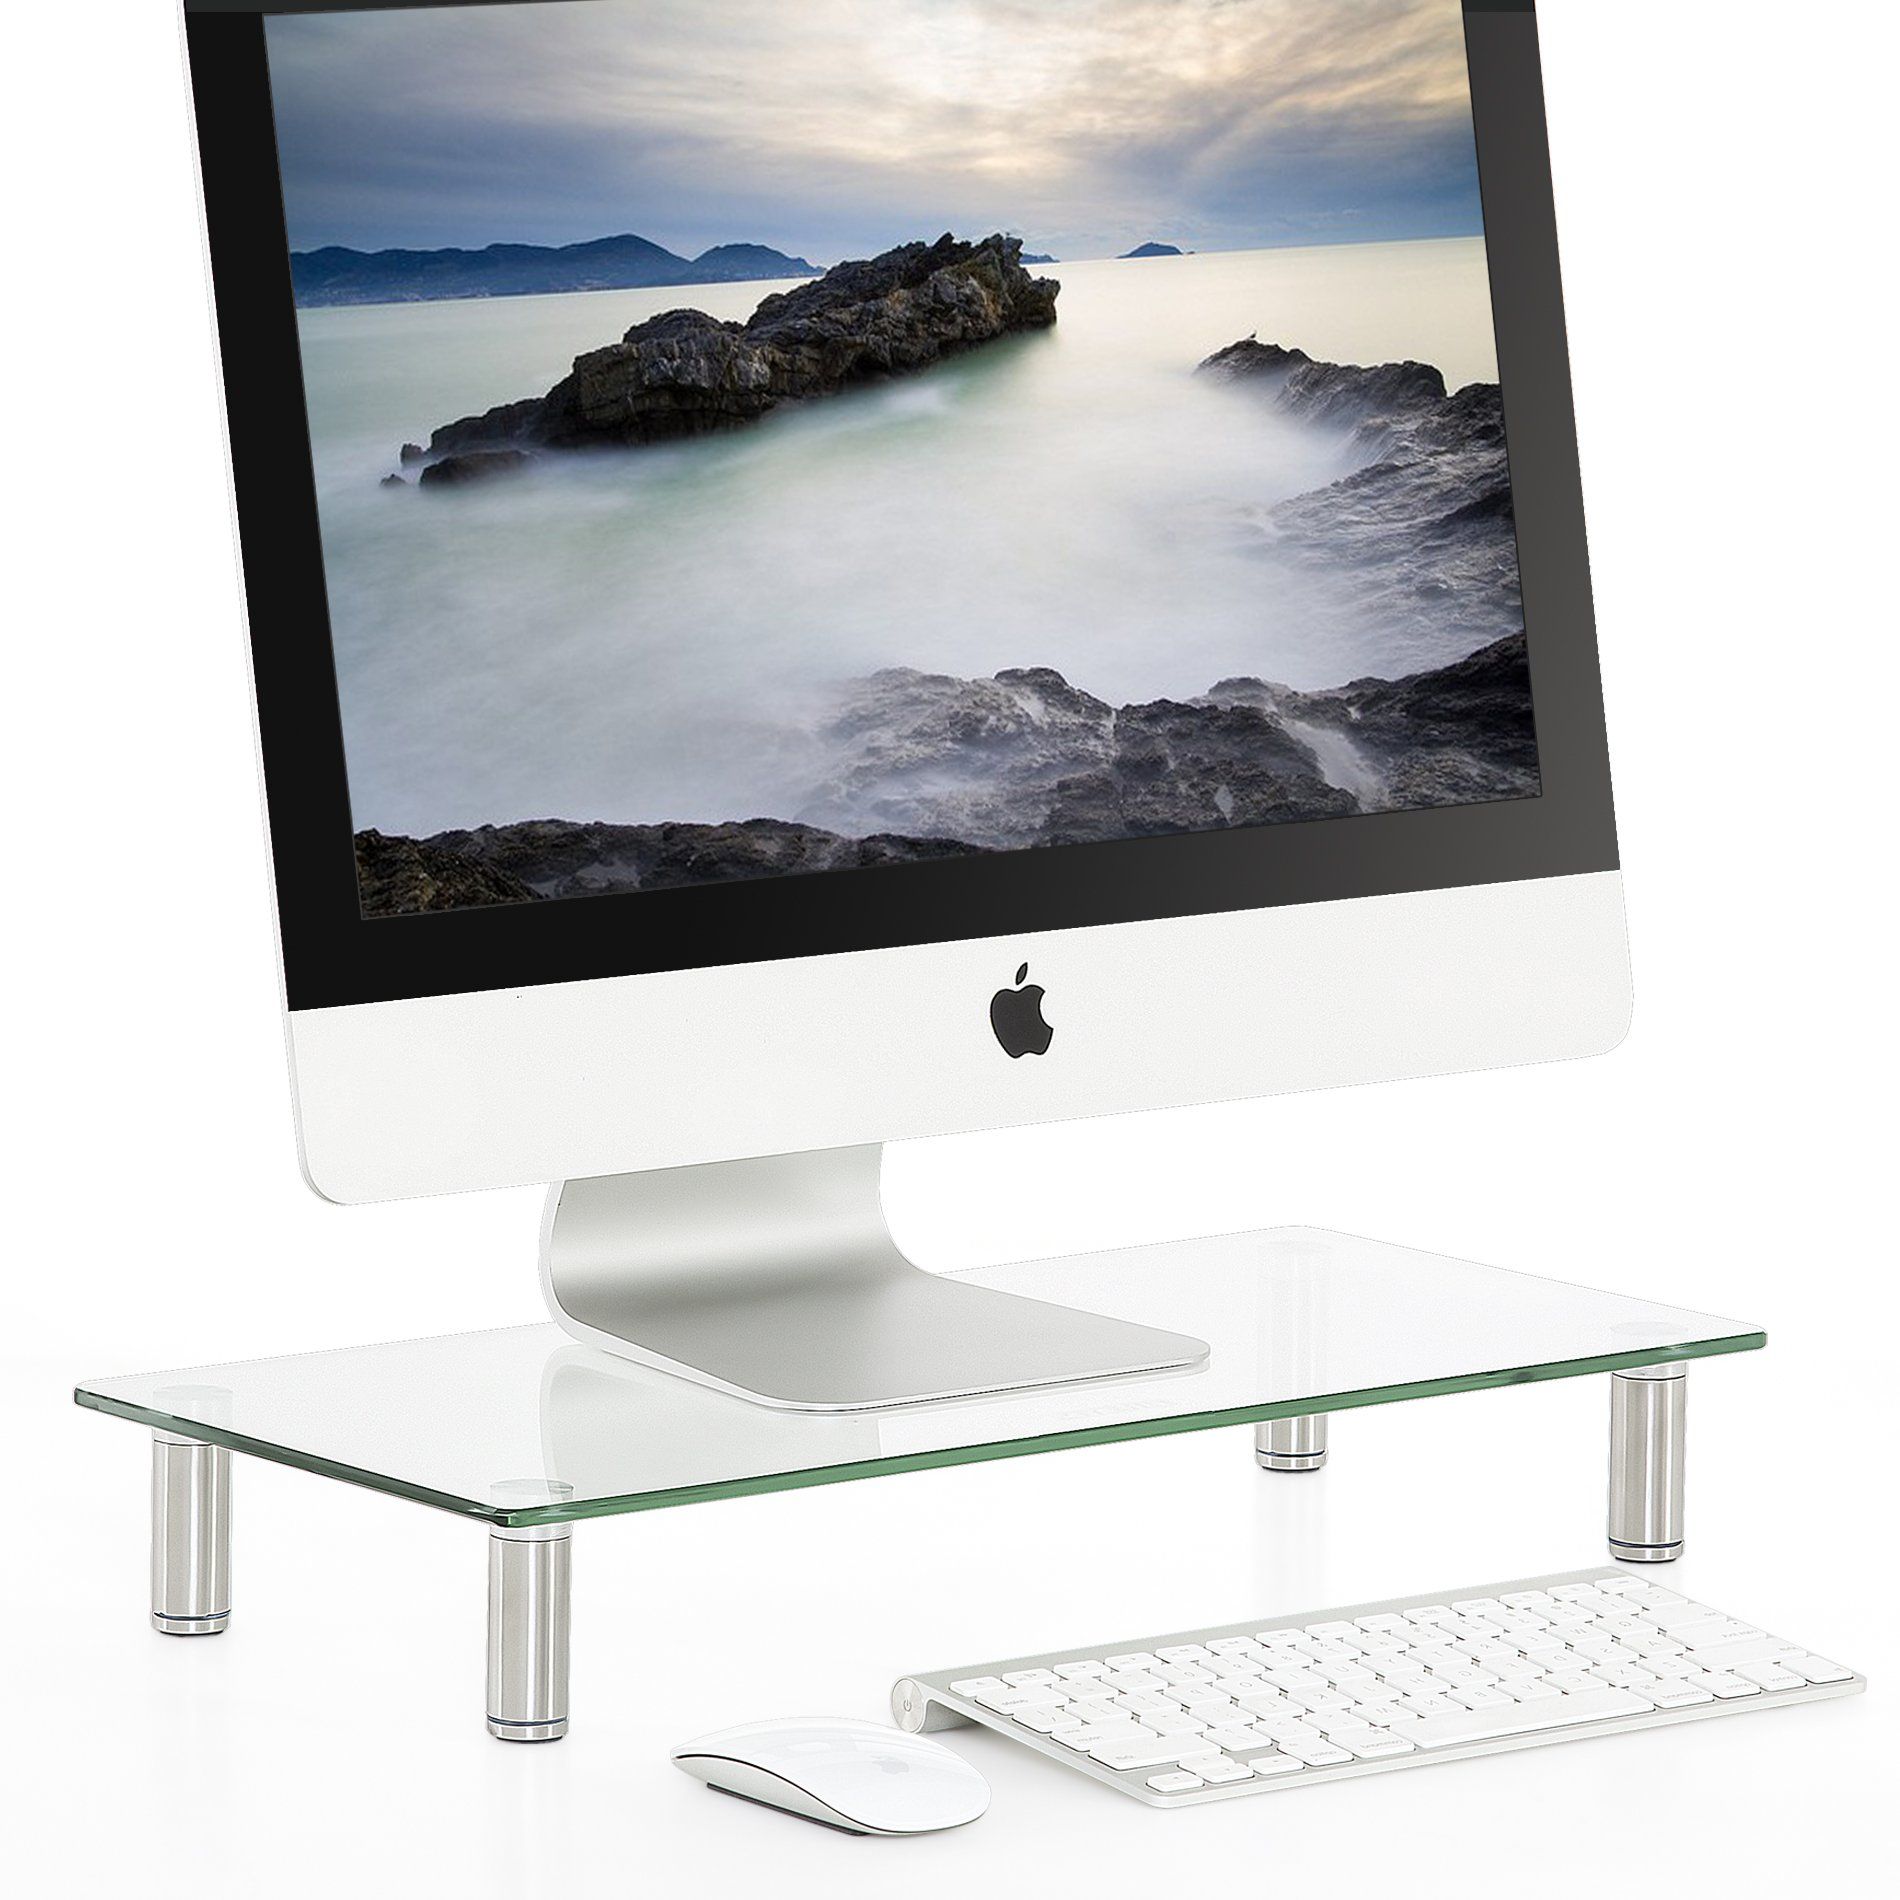 FITUEYES Clear Computer Monitor Riser Save Space Desktop Stand,DT105001GC by FITÜEYES (Image #1)